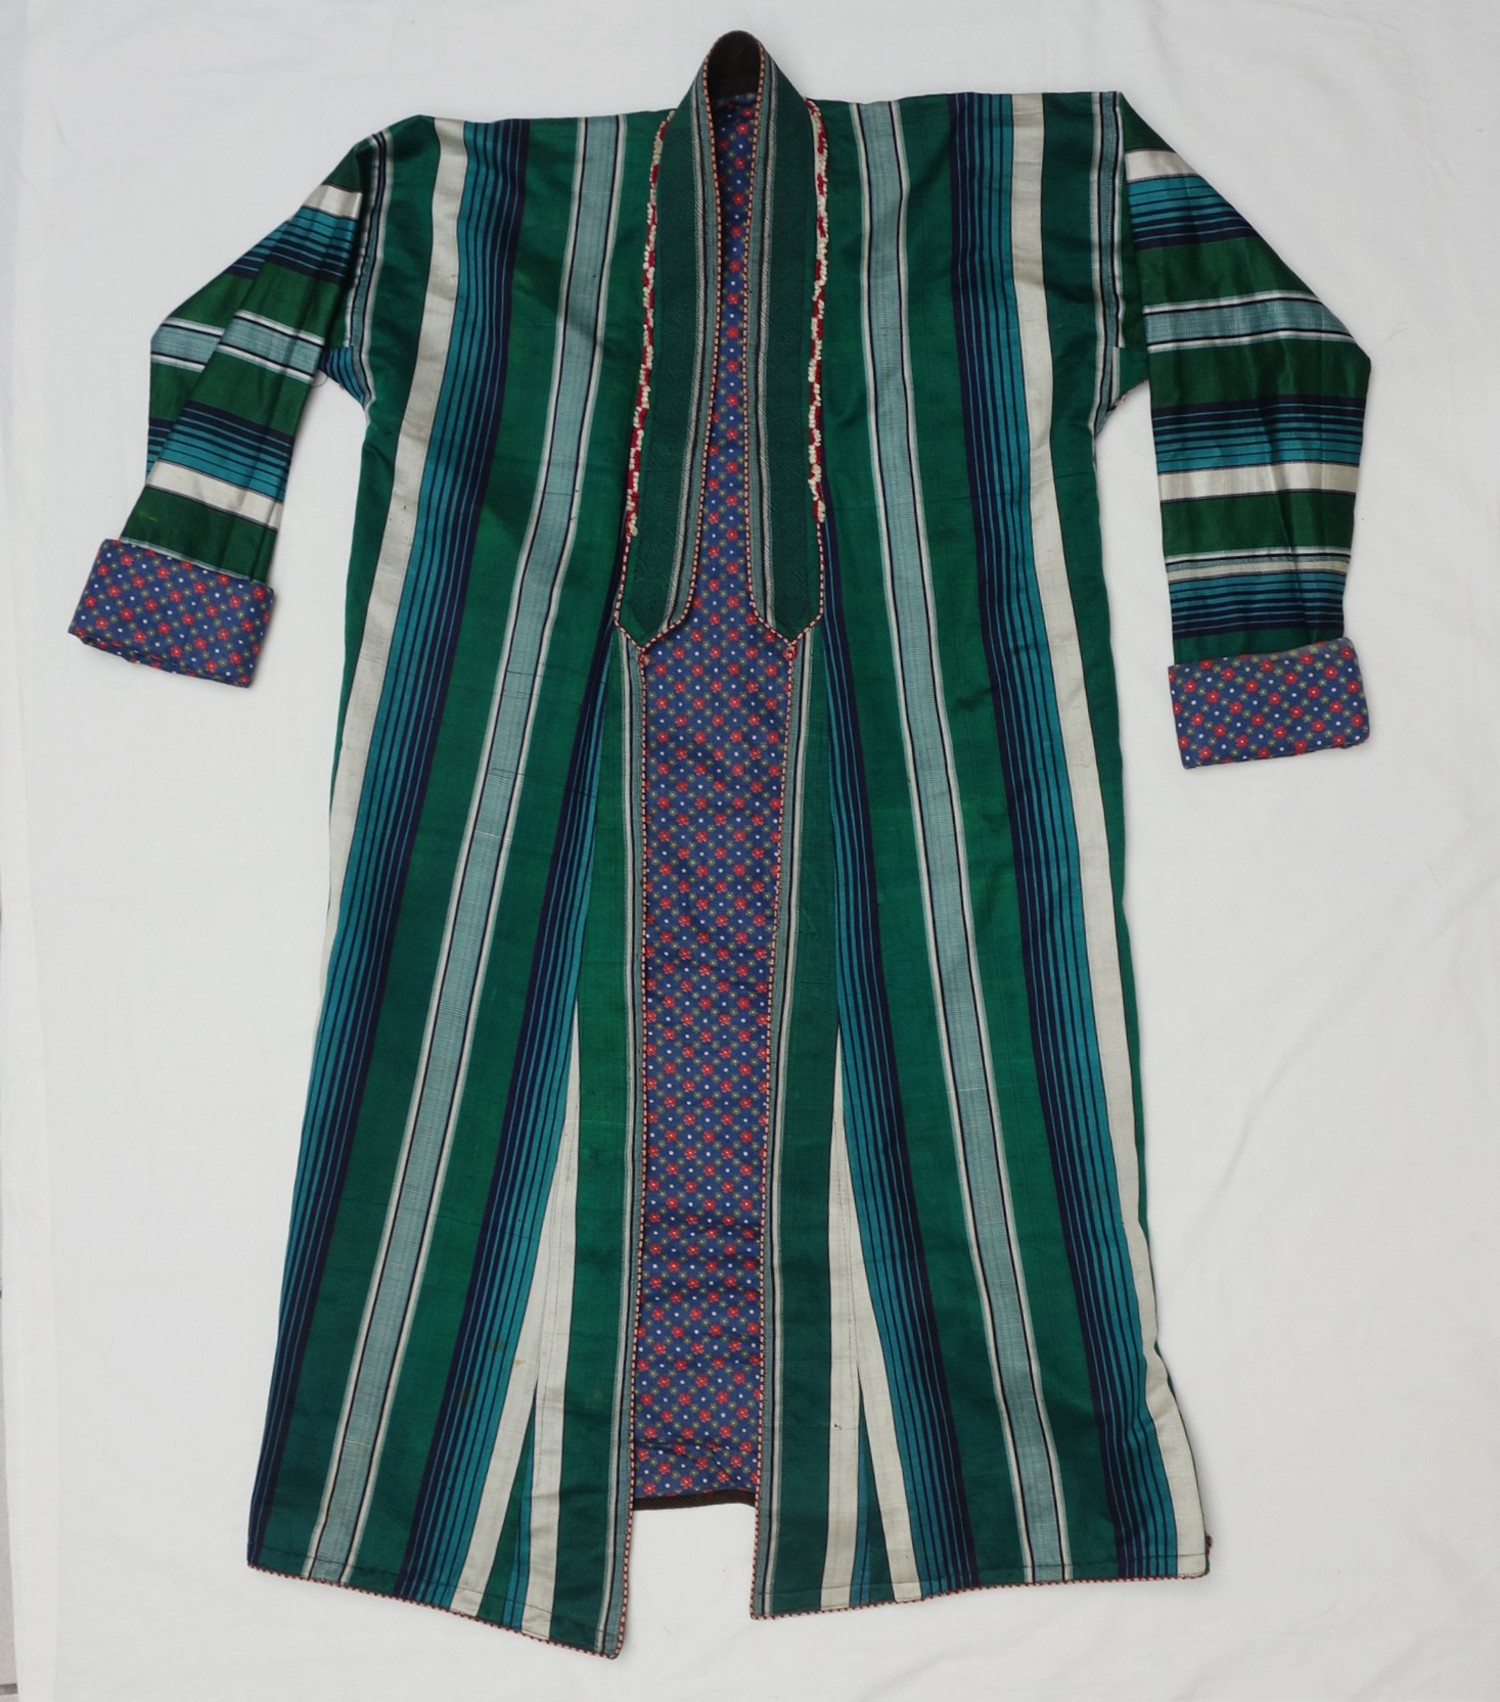 Man's coat (chapan) from northern Afghanistan, second half 20th century (TRC collection 2016.1853). For more information, click the illustration.